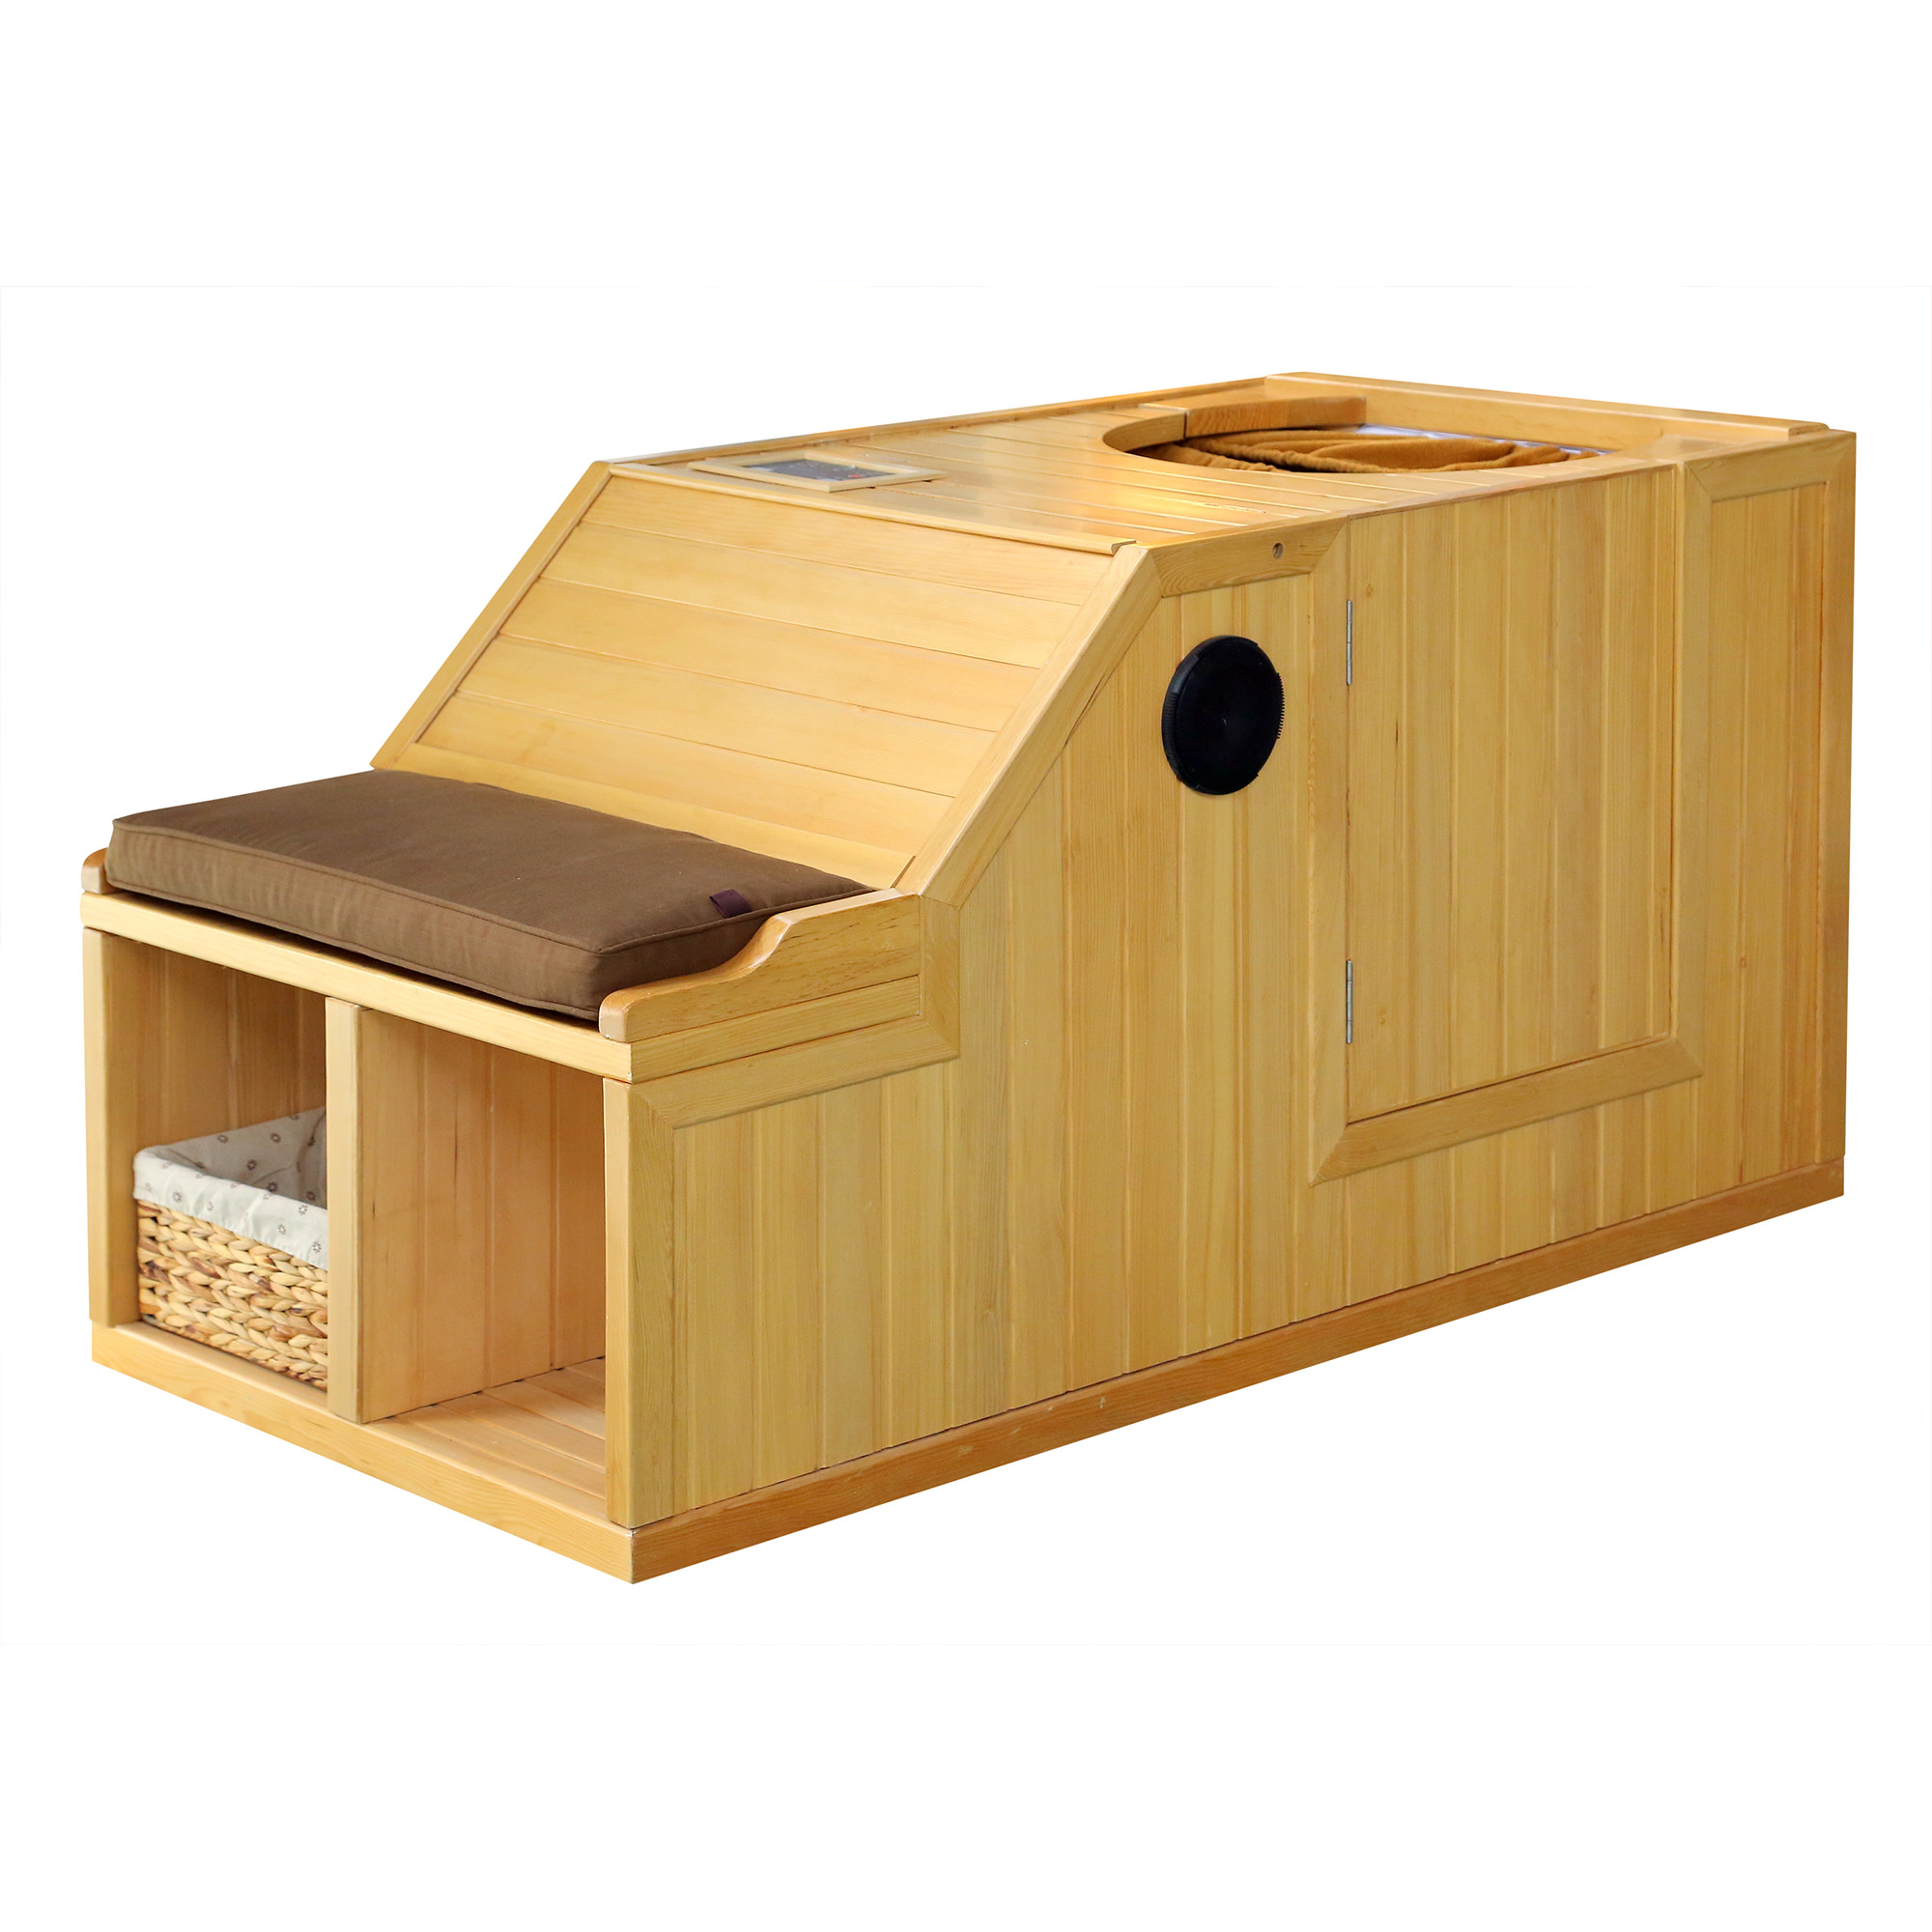 Radiant Saunas Serenity Personal Half Sauna with FAR Infrared Carbon Heaters, Audio System, Solid Canadian Hemlock